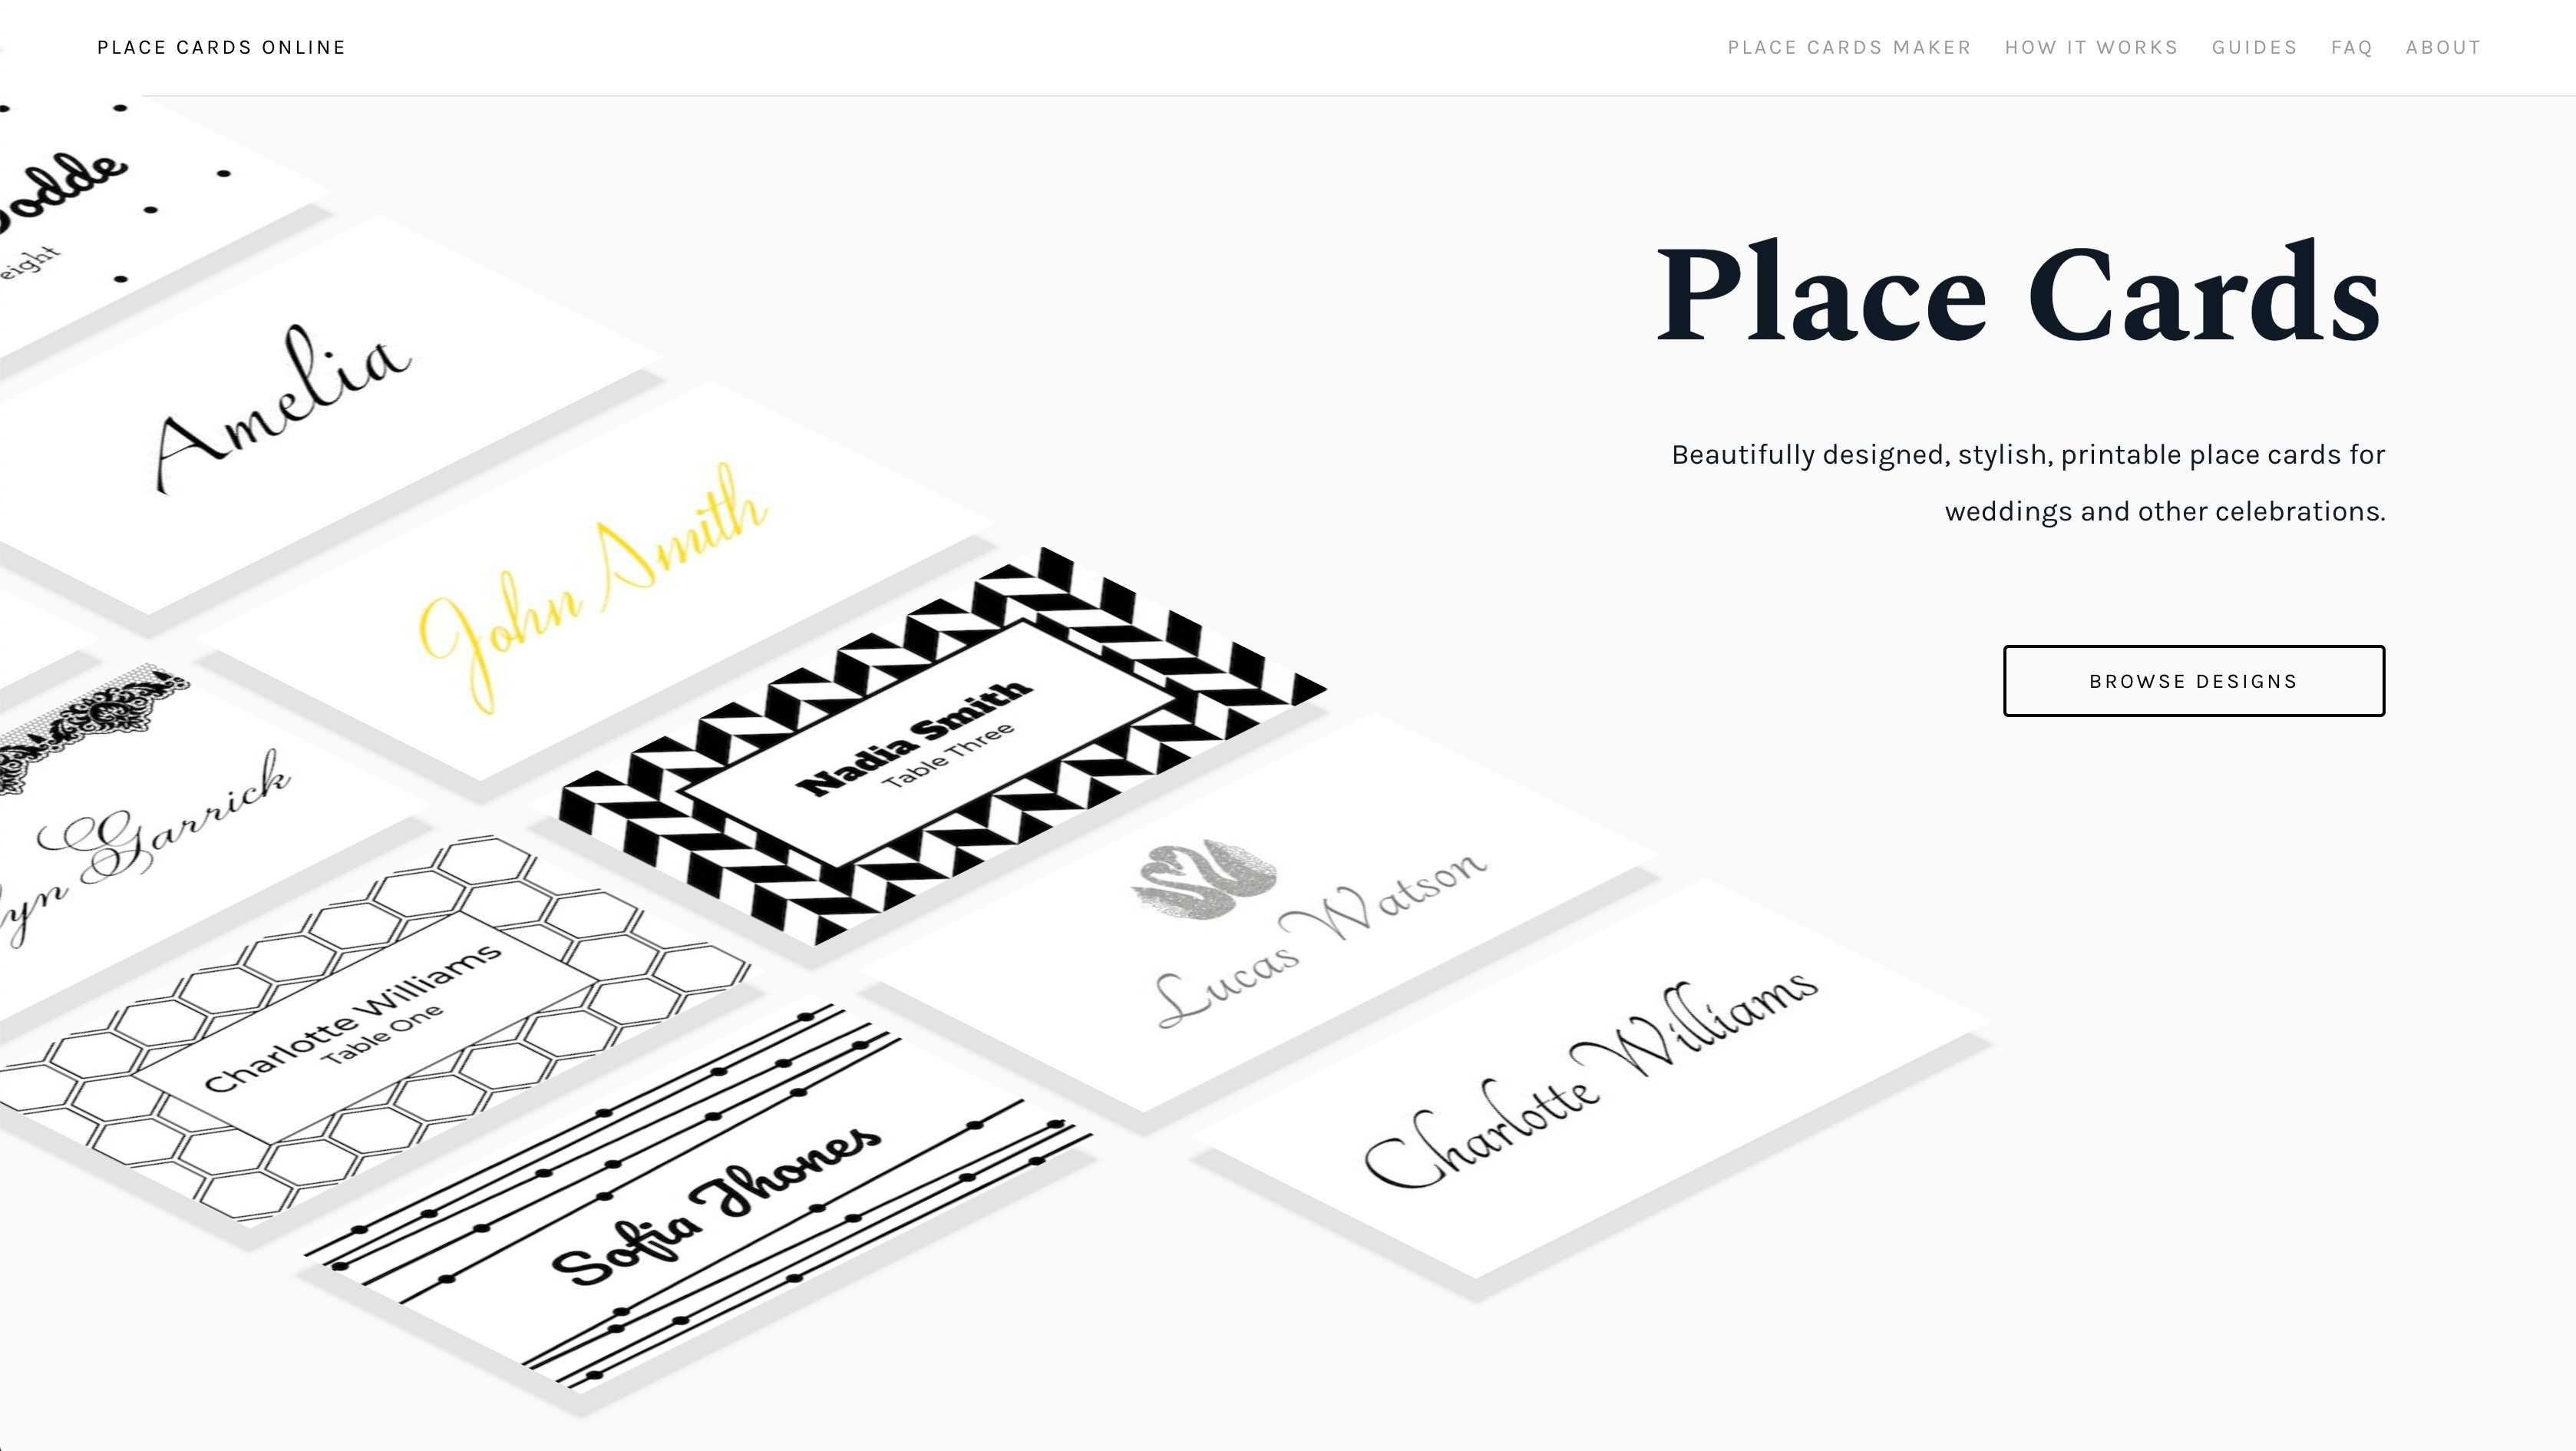 Place Cards Online - Place Cards Maker. Beautifully Designed Pertaining To Celebrate It Templates Place Cards